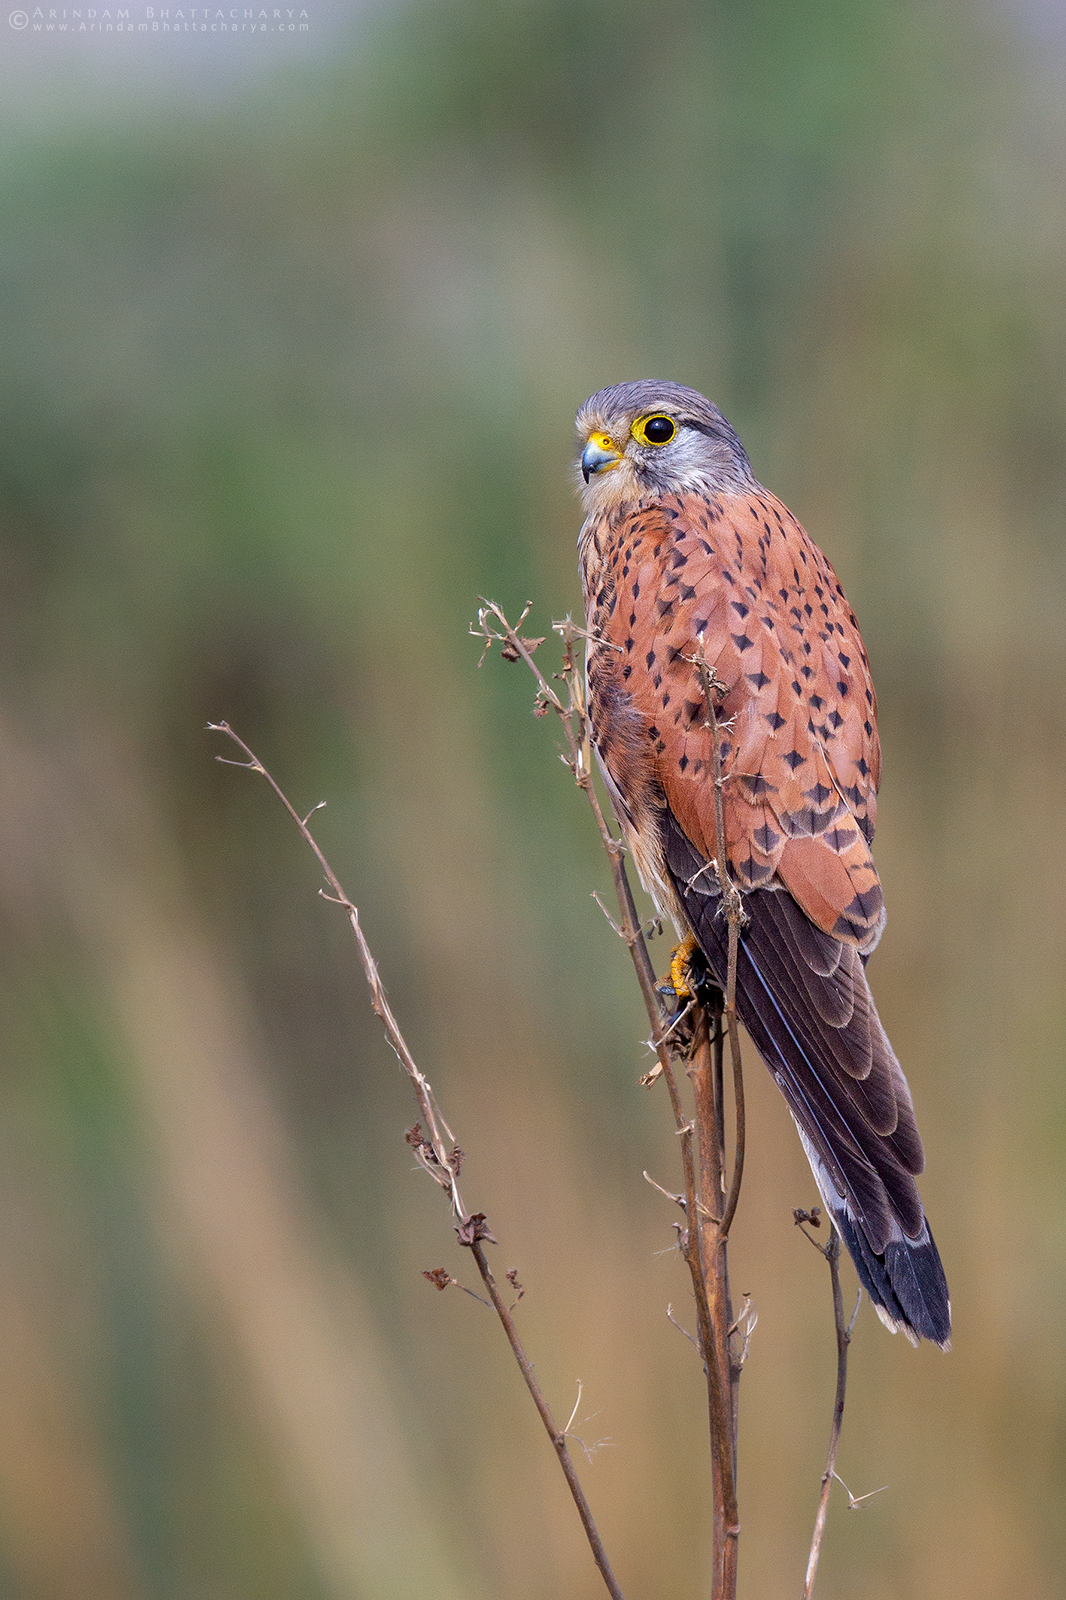 Common Kestral or Falco tinnunculus in Rajarhat grassland Kolkata West Bengal India during winter.